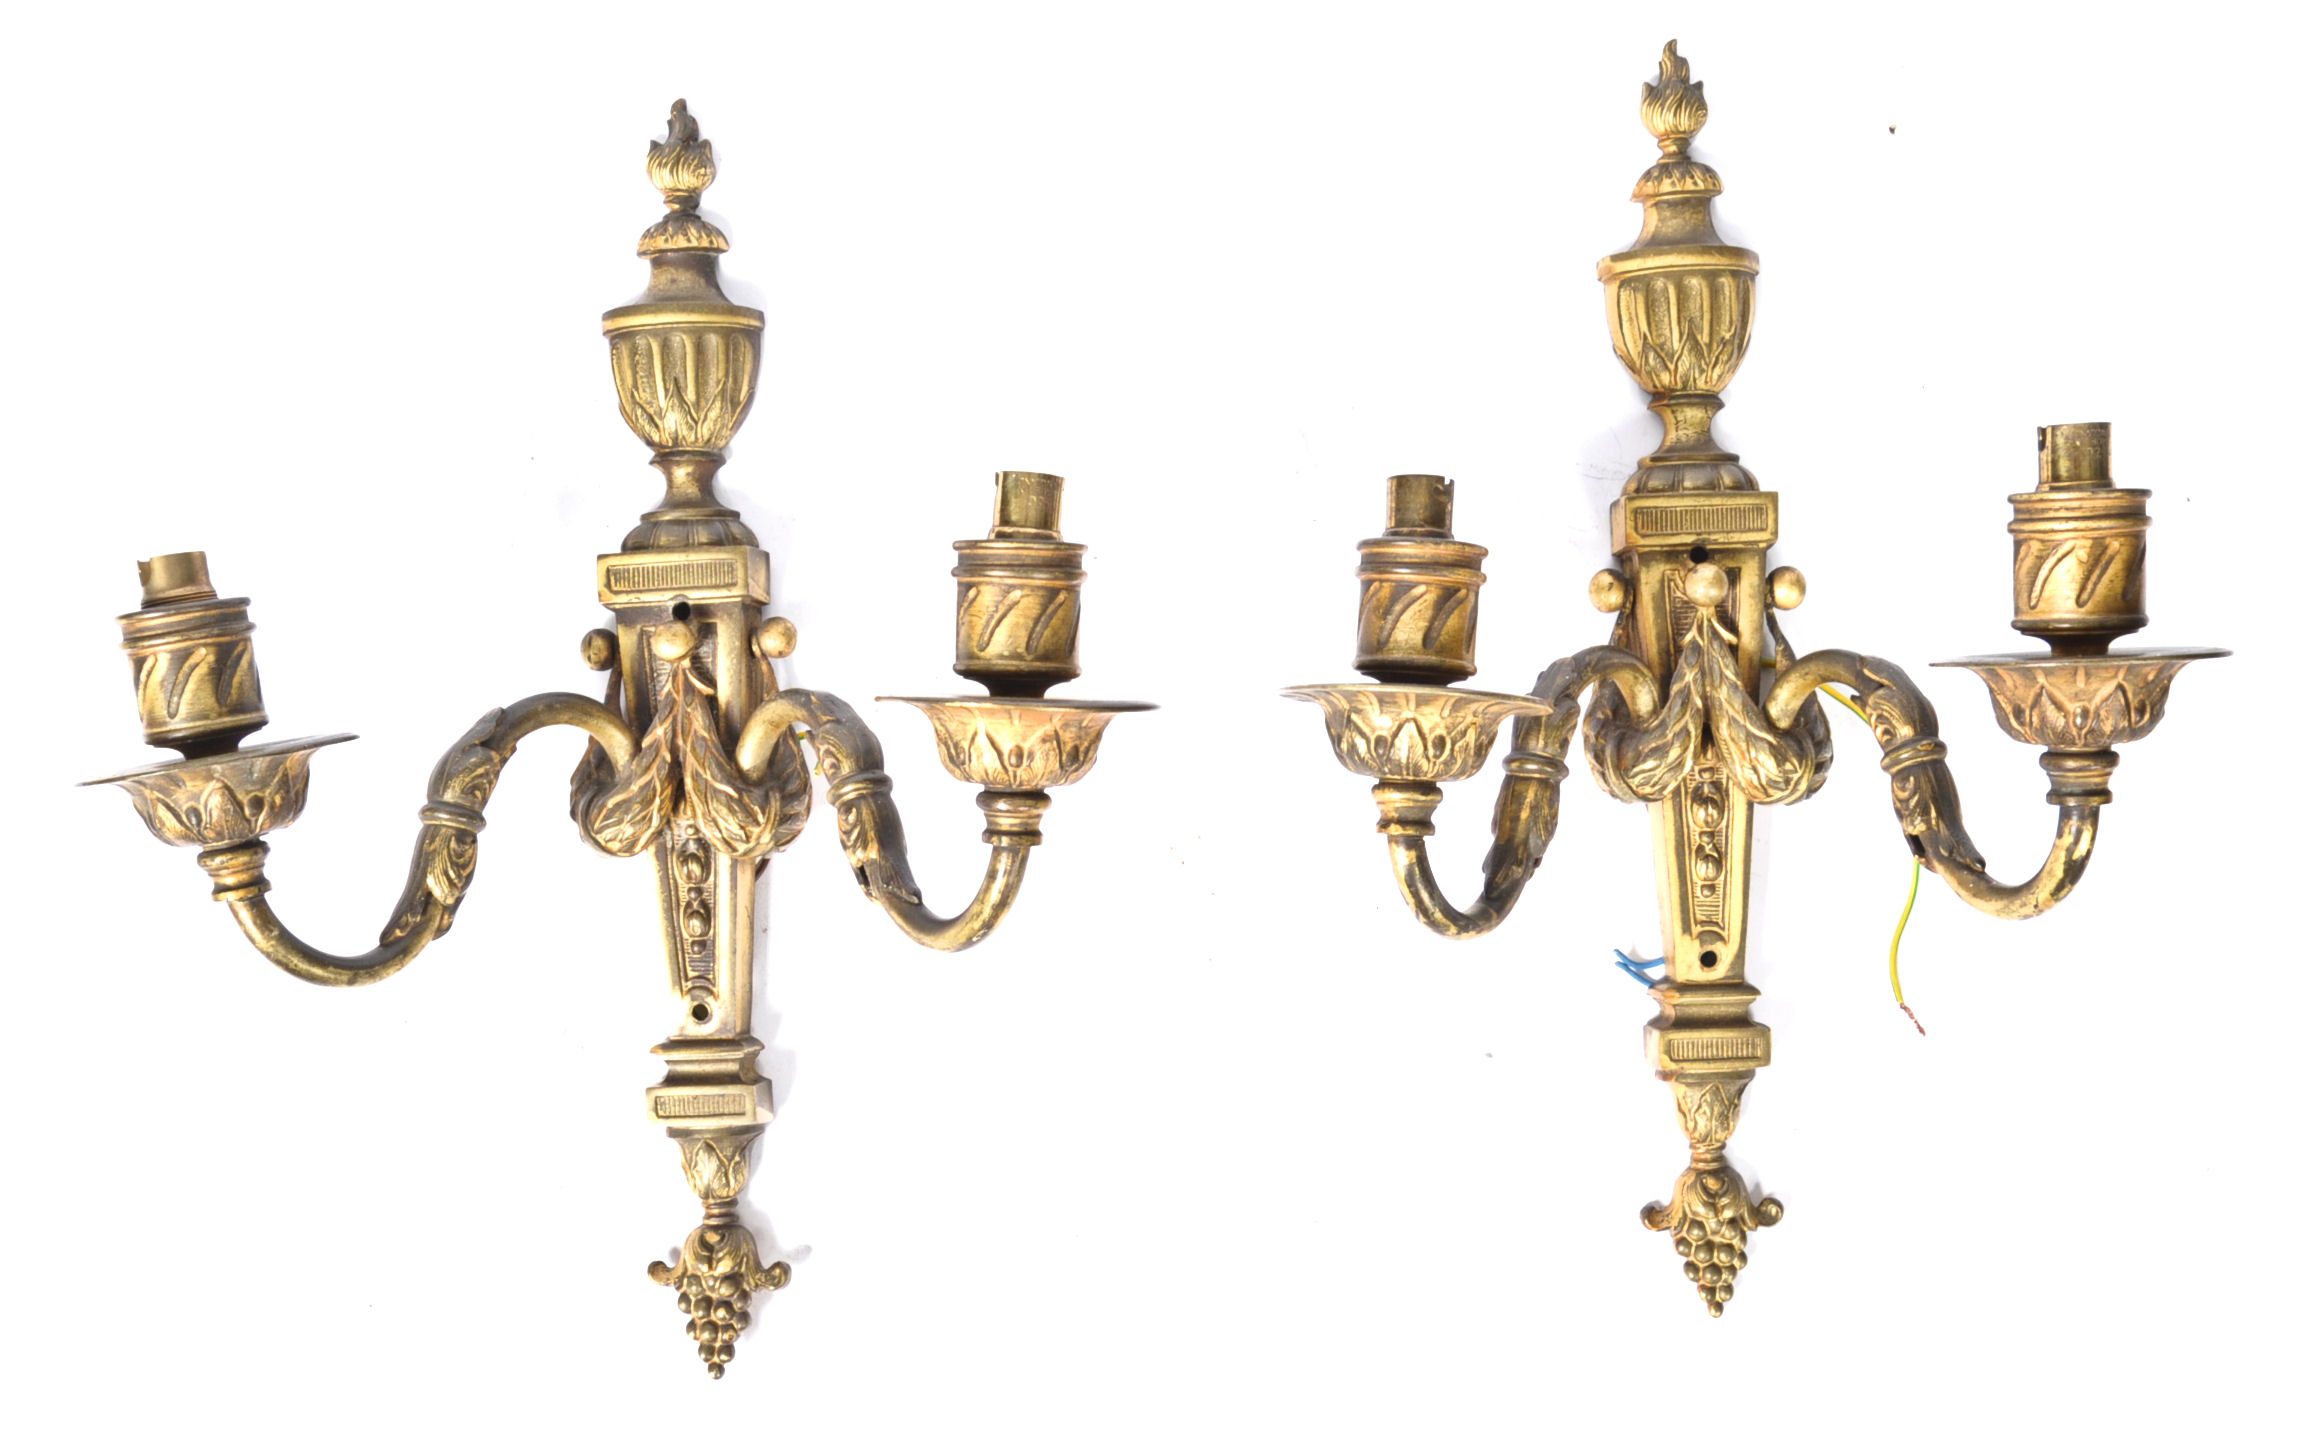 Lot 33 - PAIR OF EDWARDIAN GILT BRONZE WALL LIGHTX IN THE A